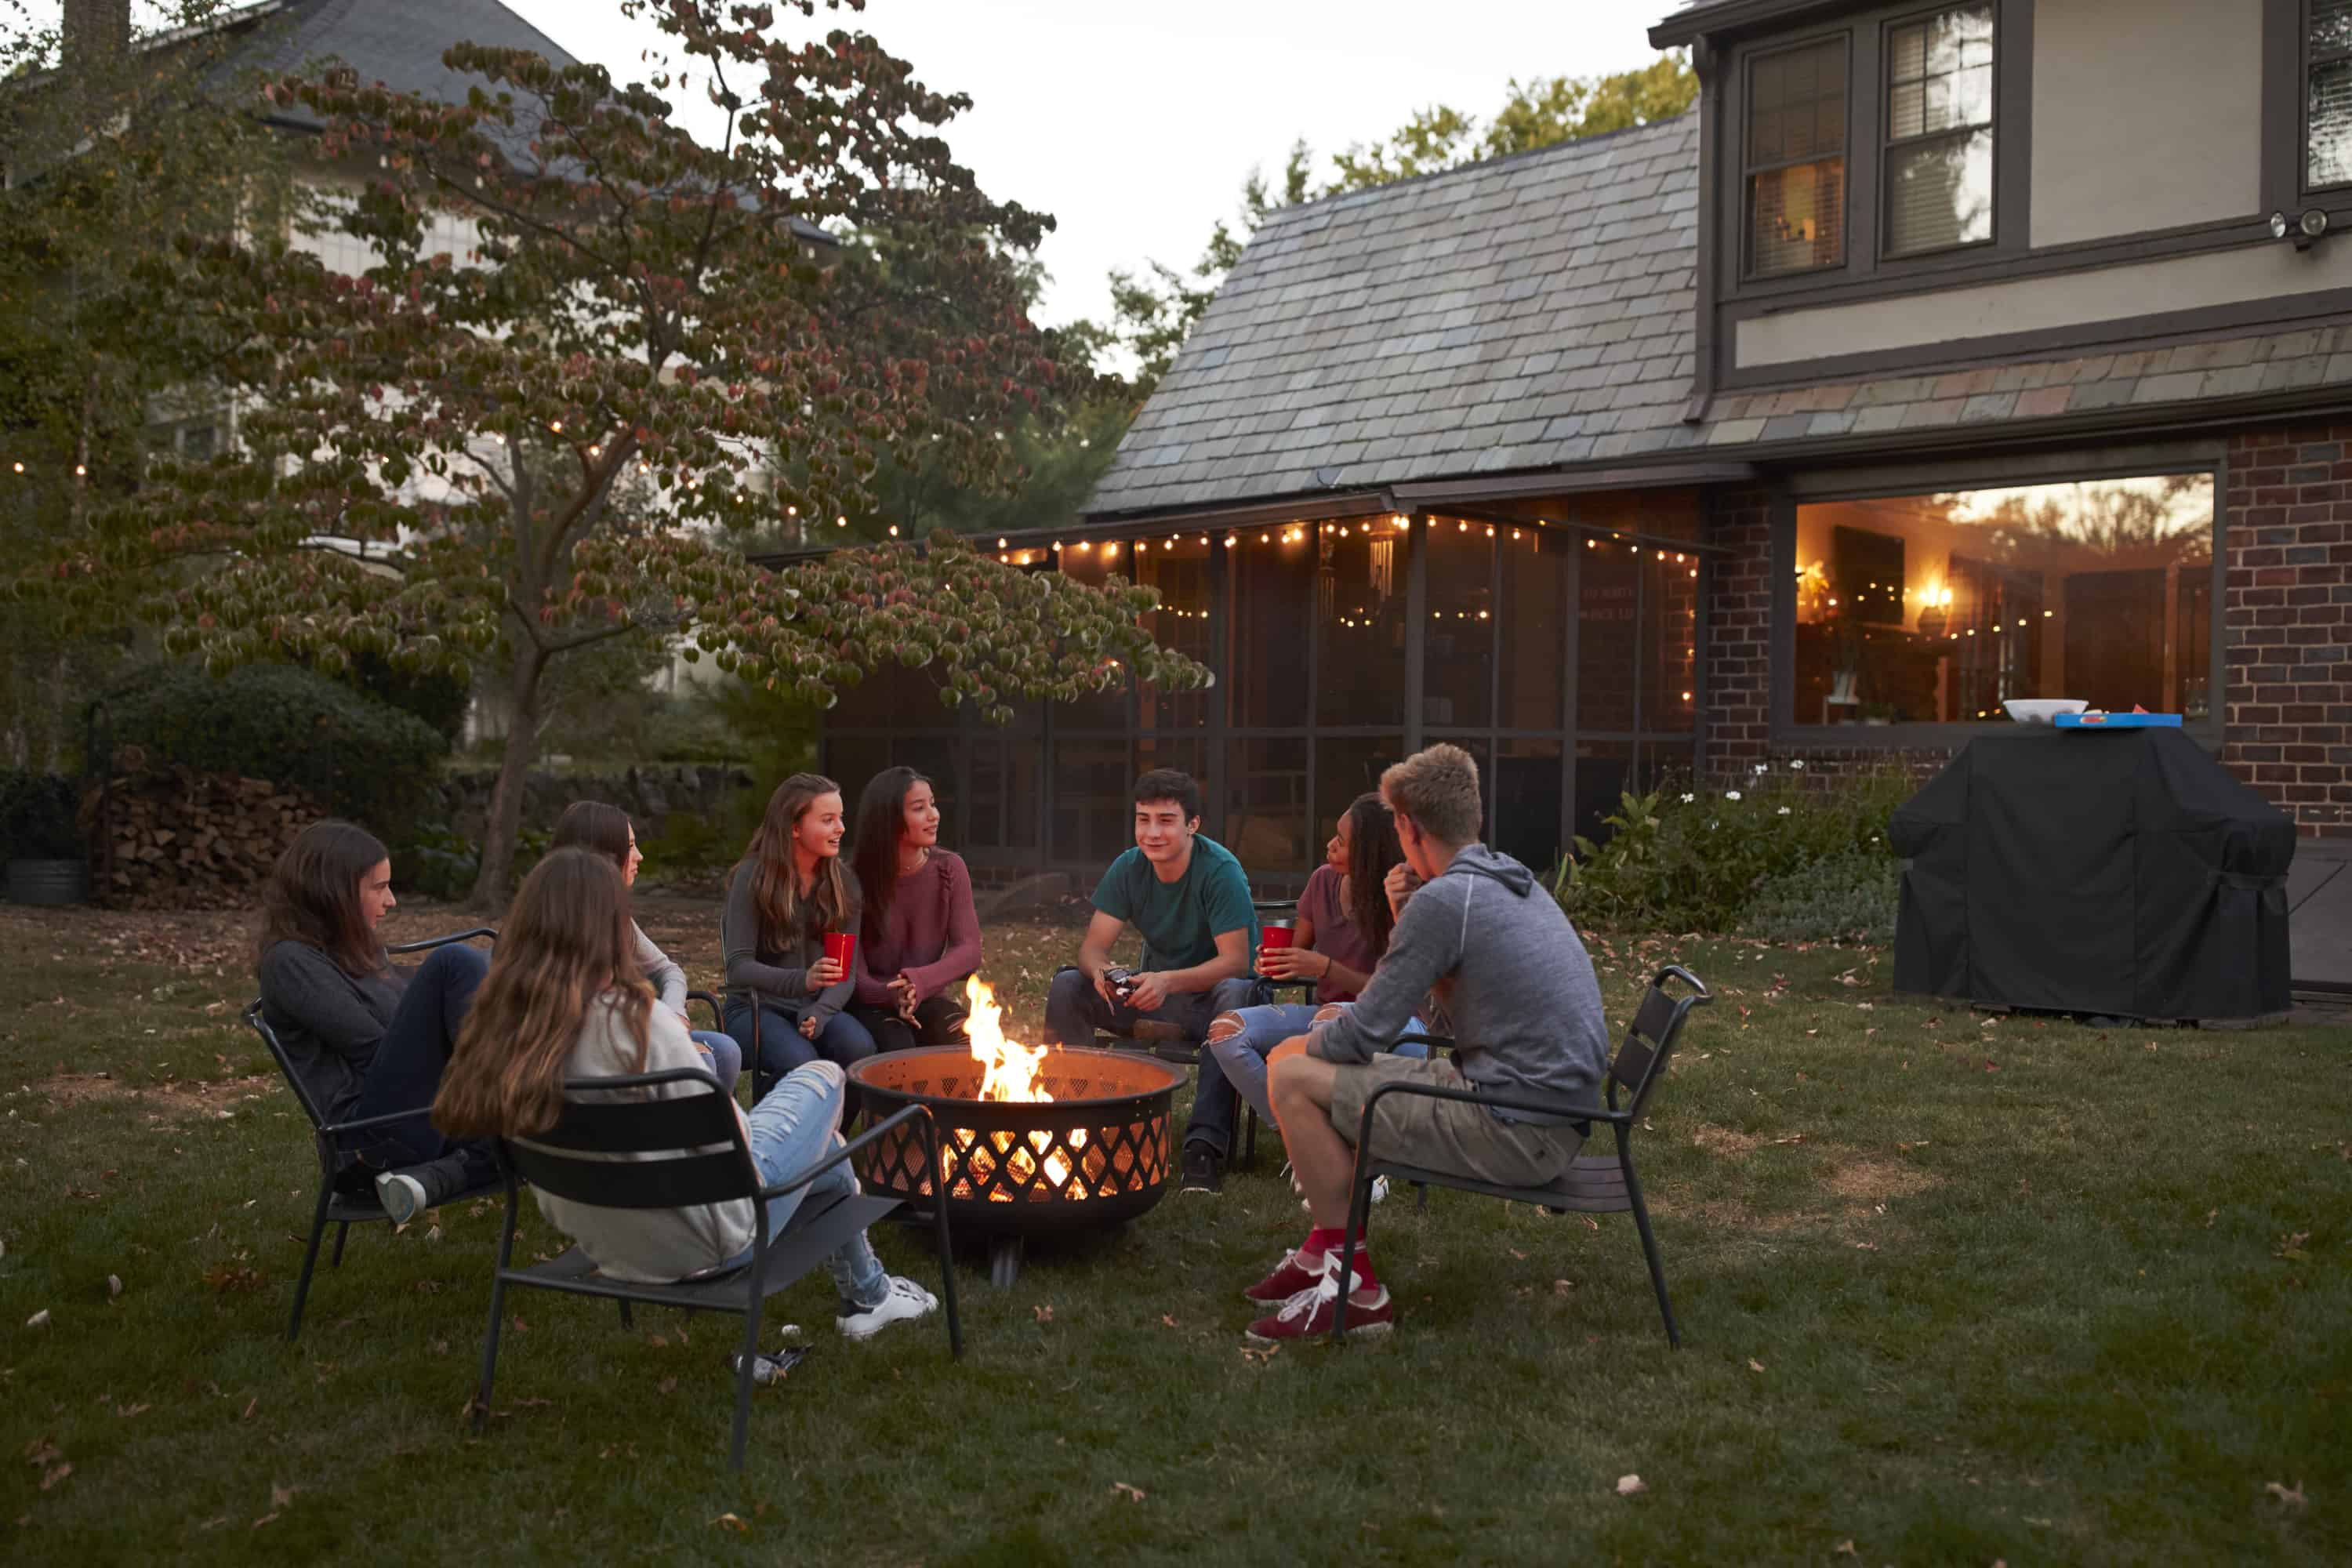 Teenagers sit talking around a fire pit in a garden at dusk